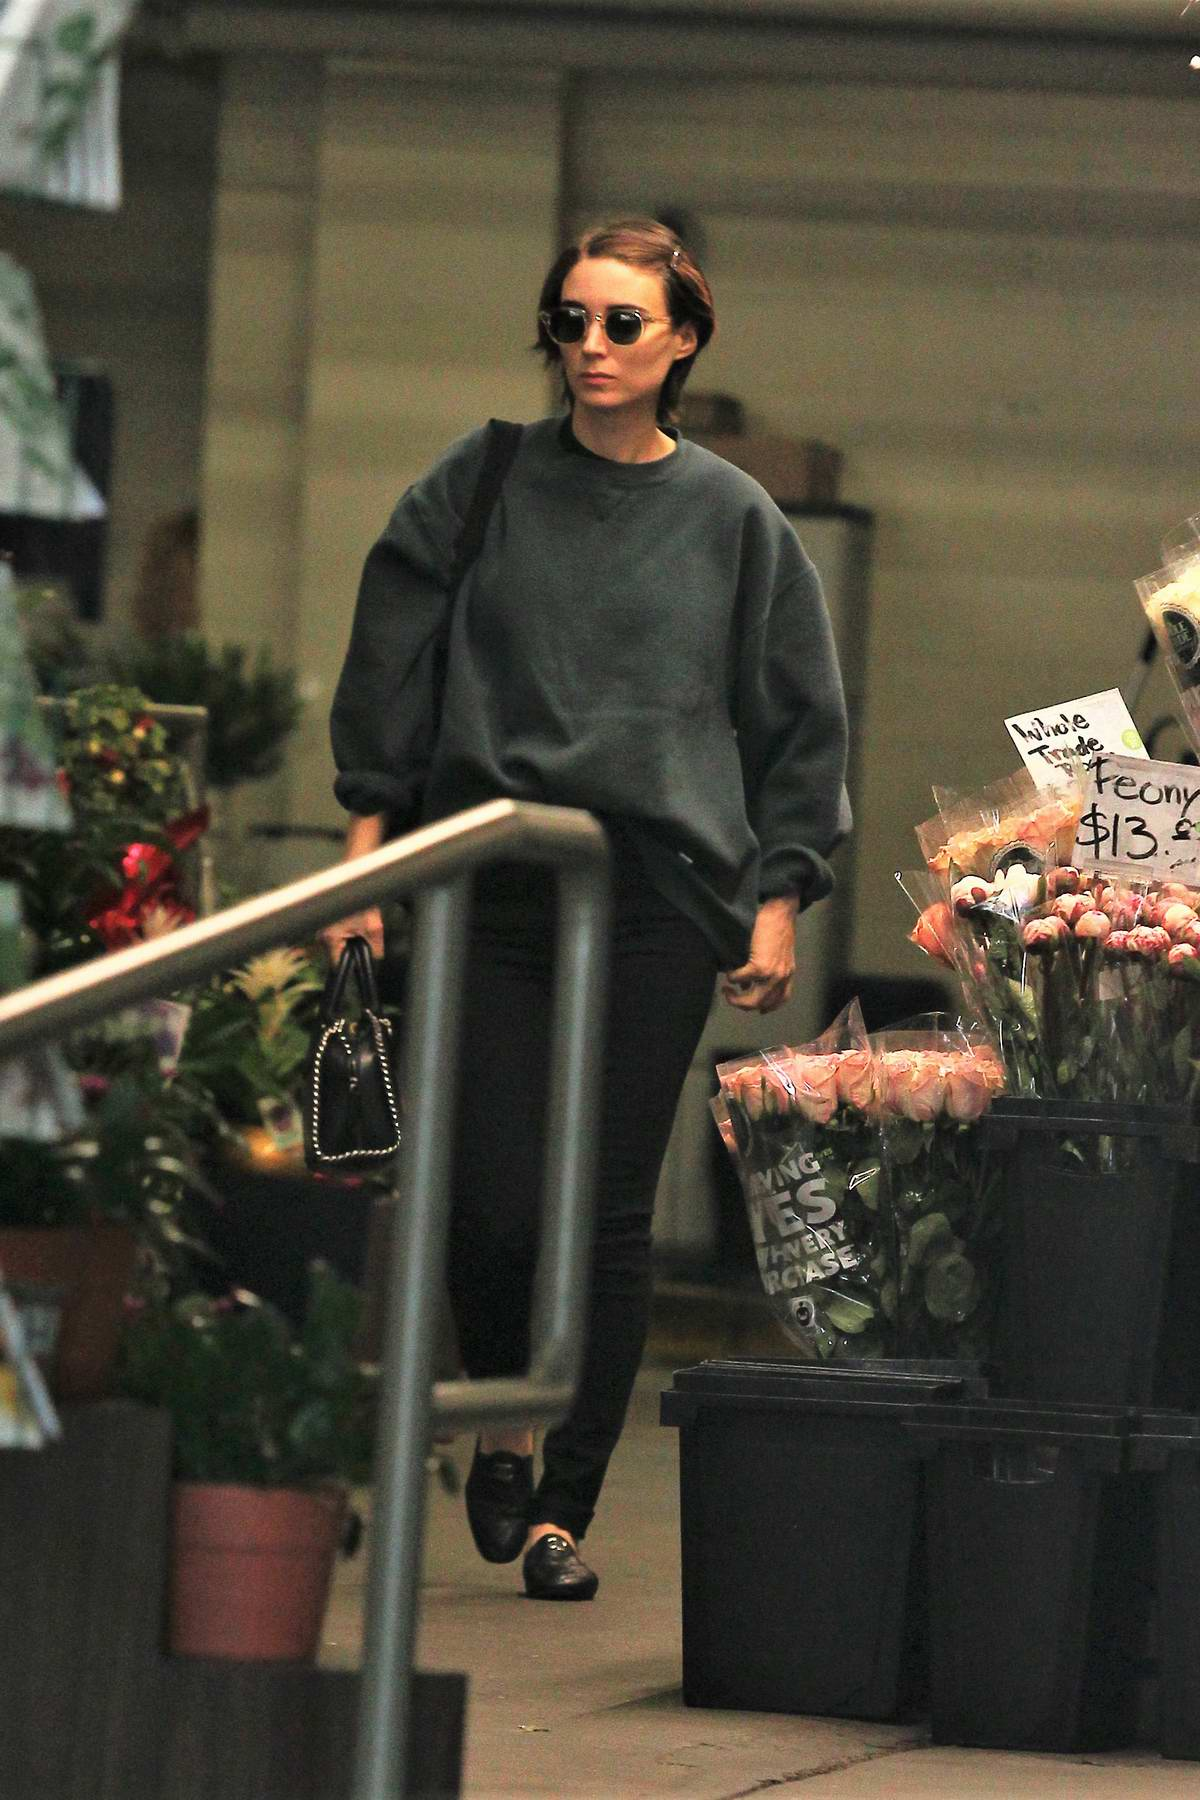 Rooney Mara leaving a grocery store in Beverly Hills, Los Angeles